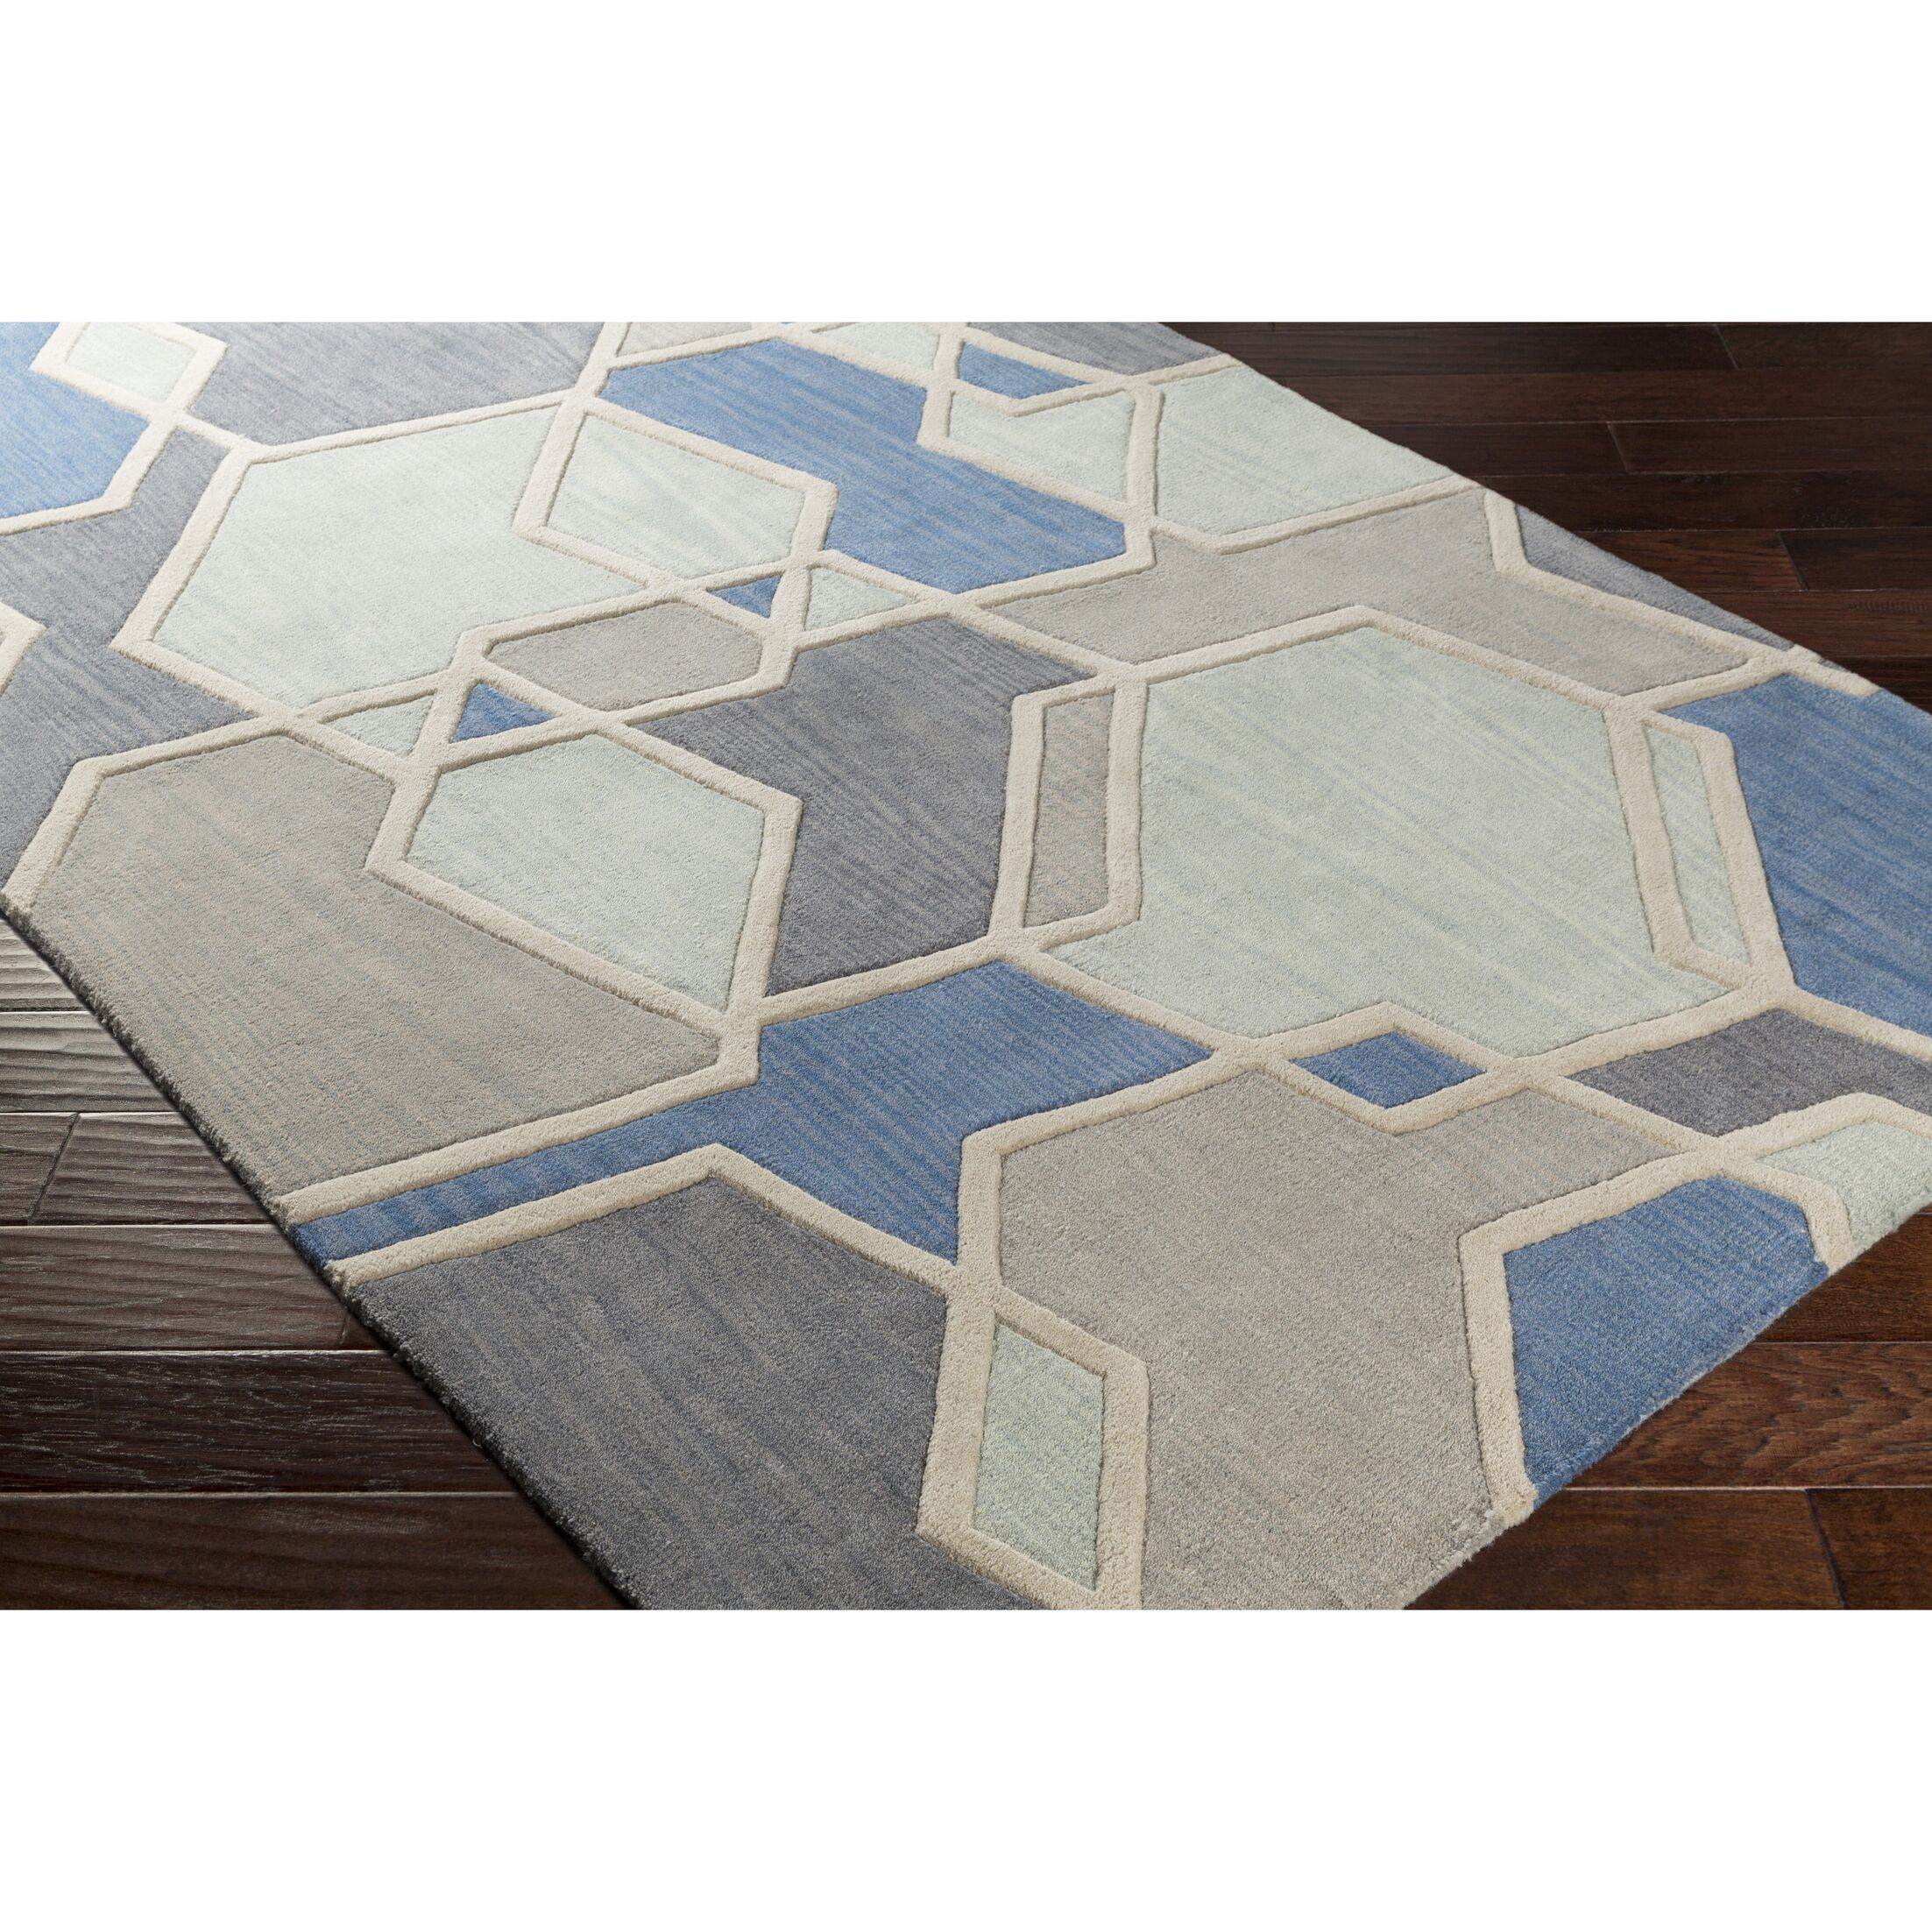 Vaughan Hand-Tufted Green/Gray Area Rug Rug Size: Runner 2'6